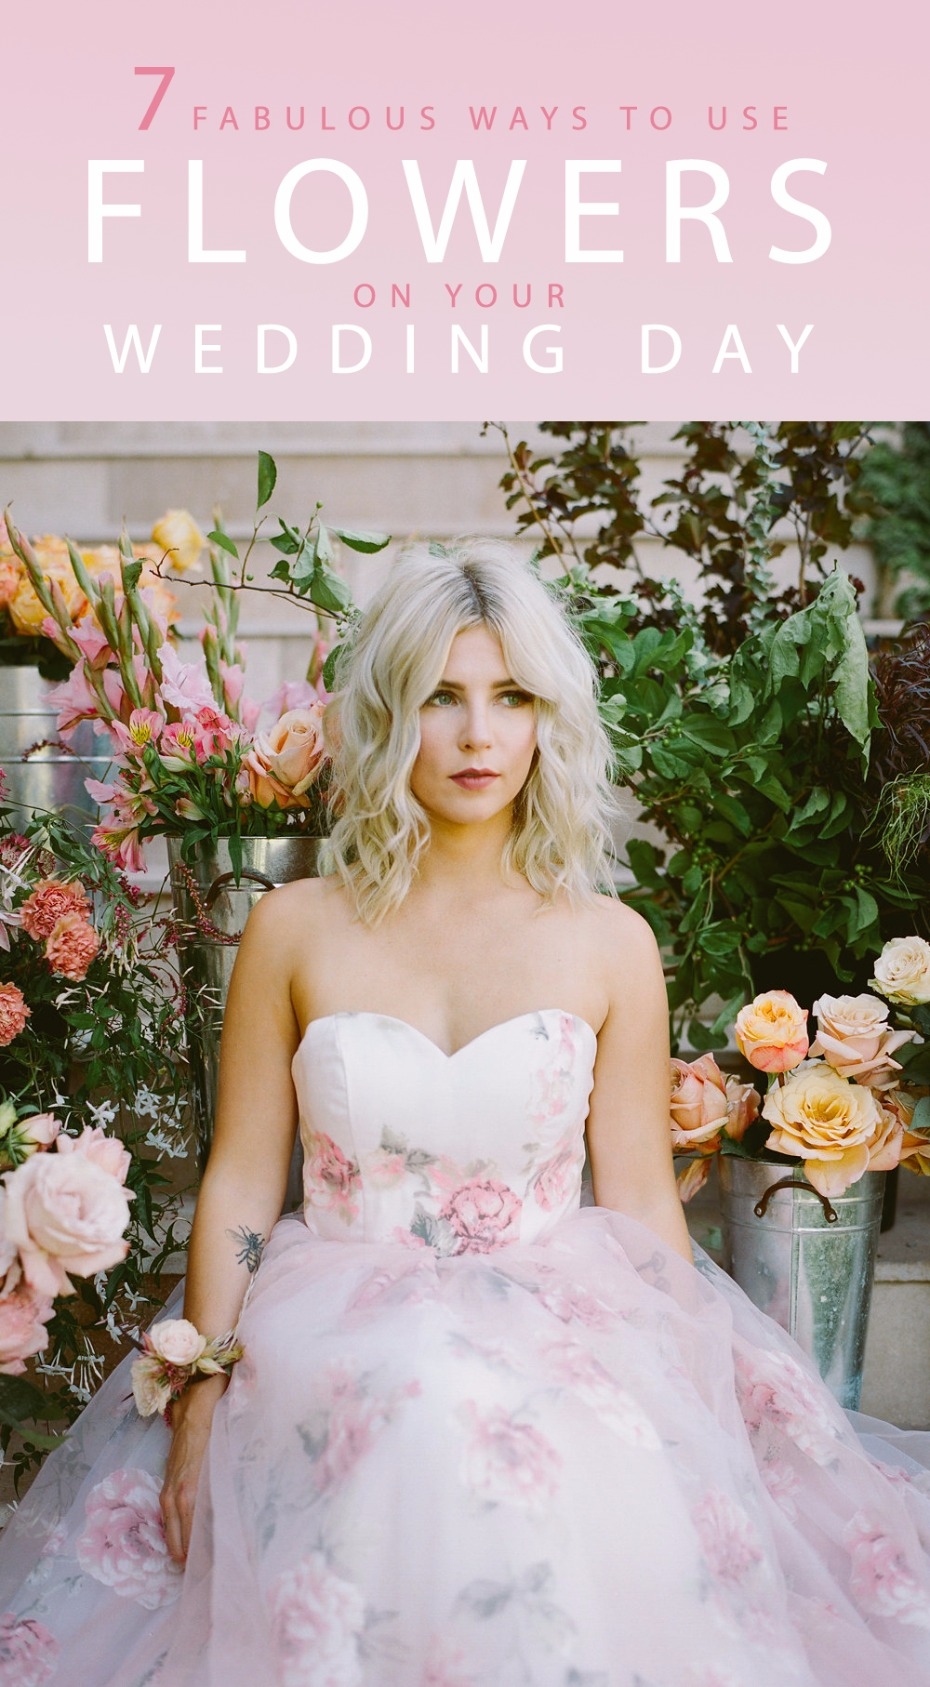 7 fabulous ways to use flowers on your wedding day